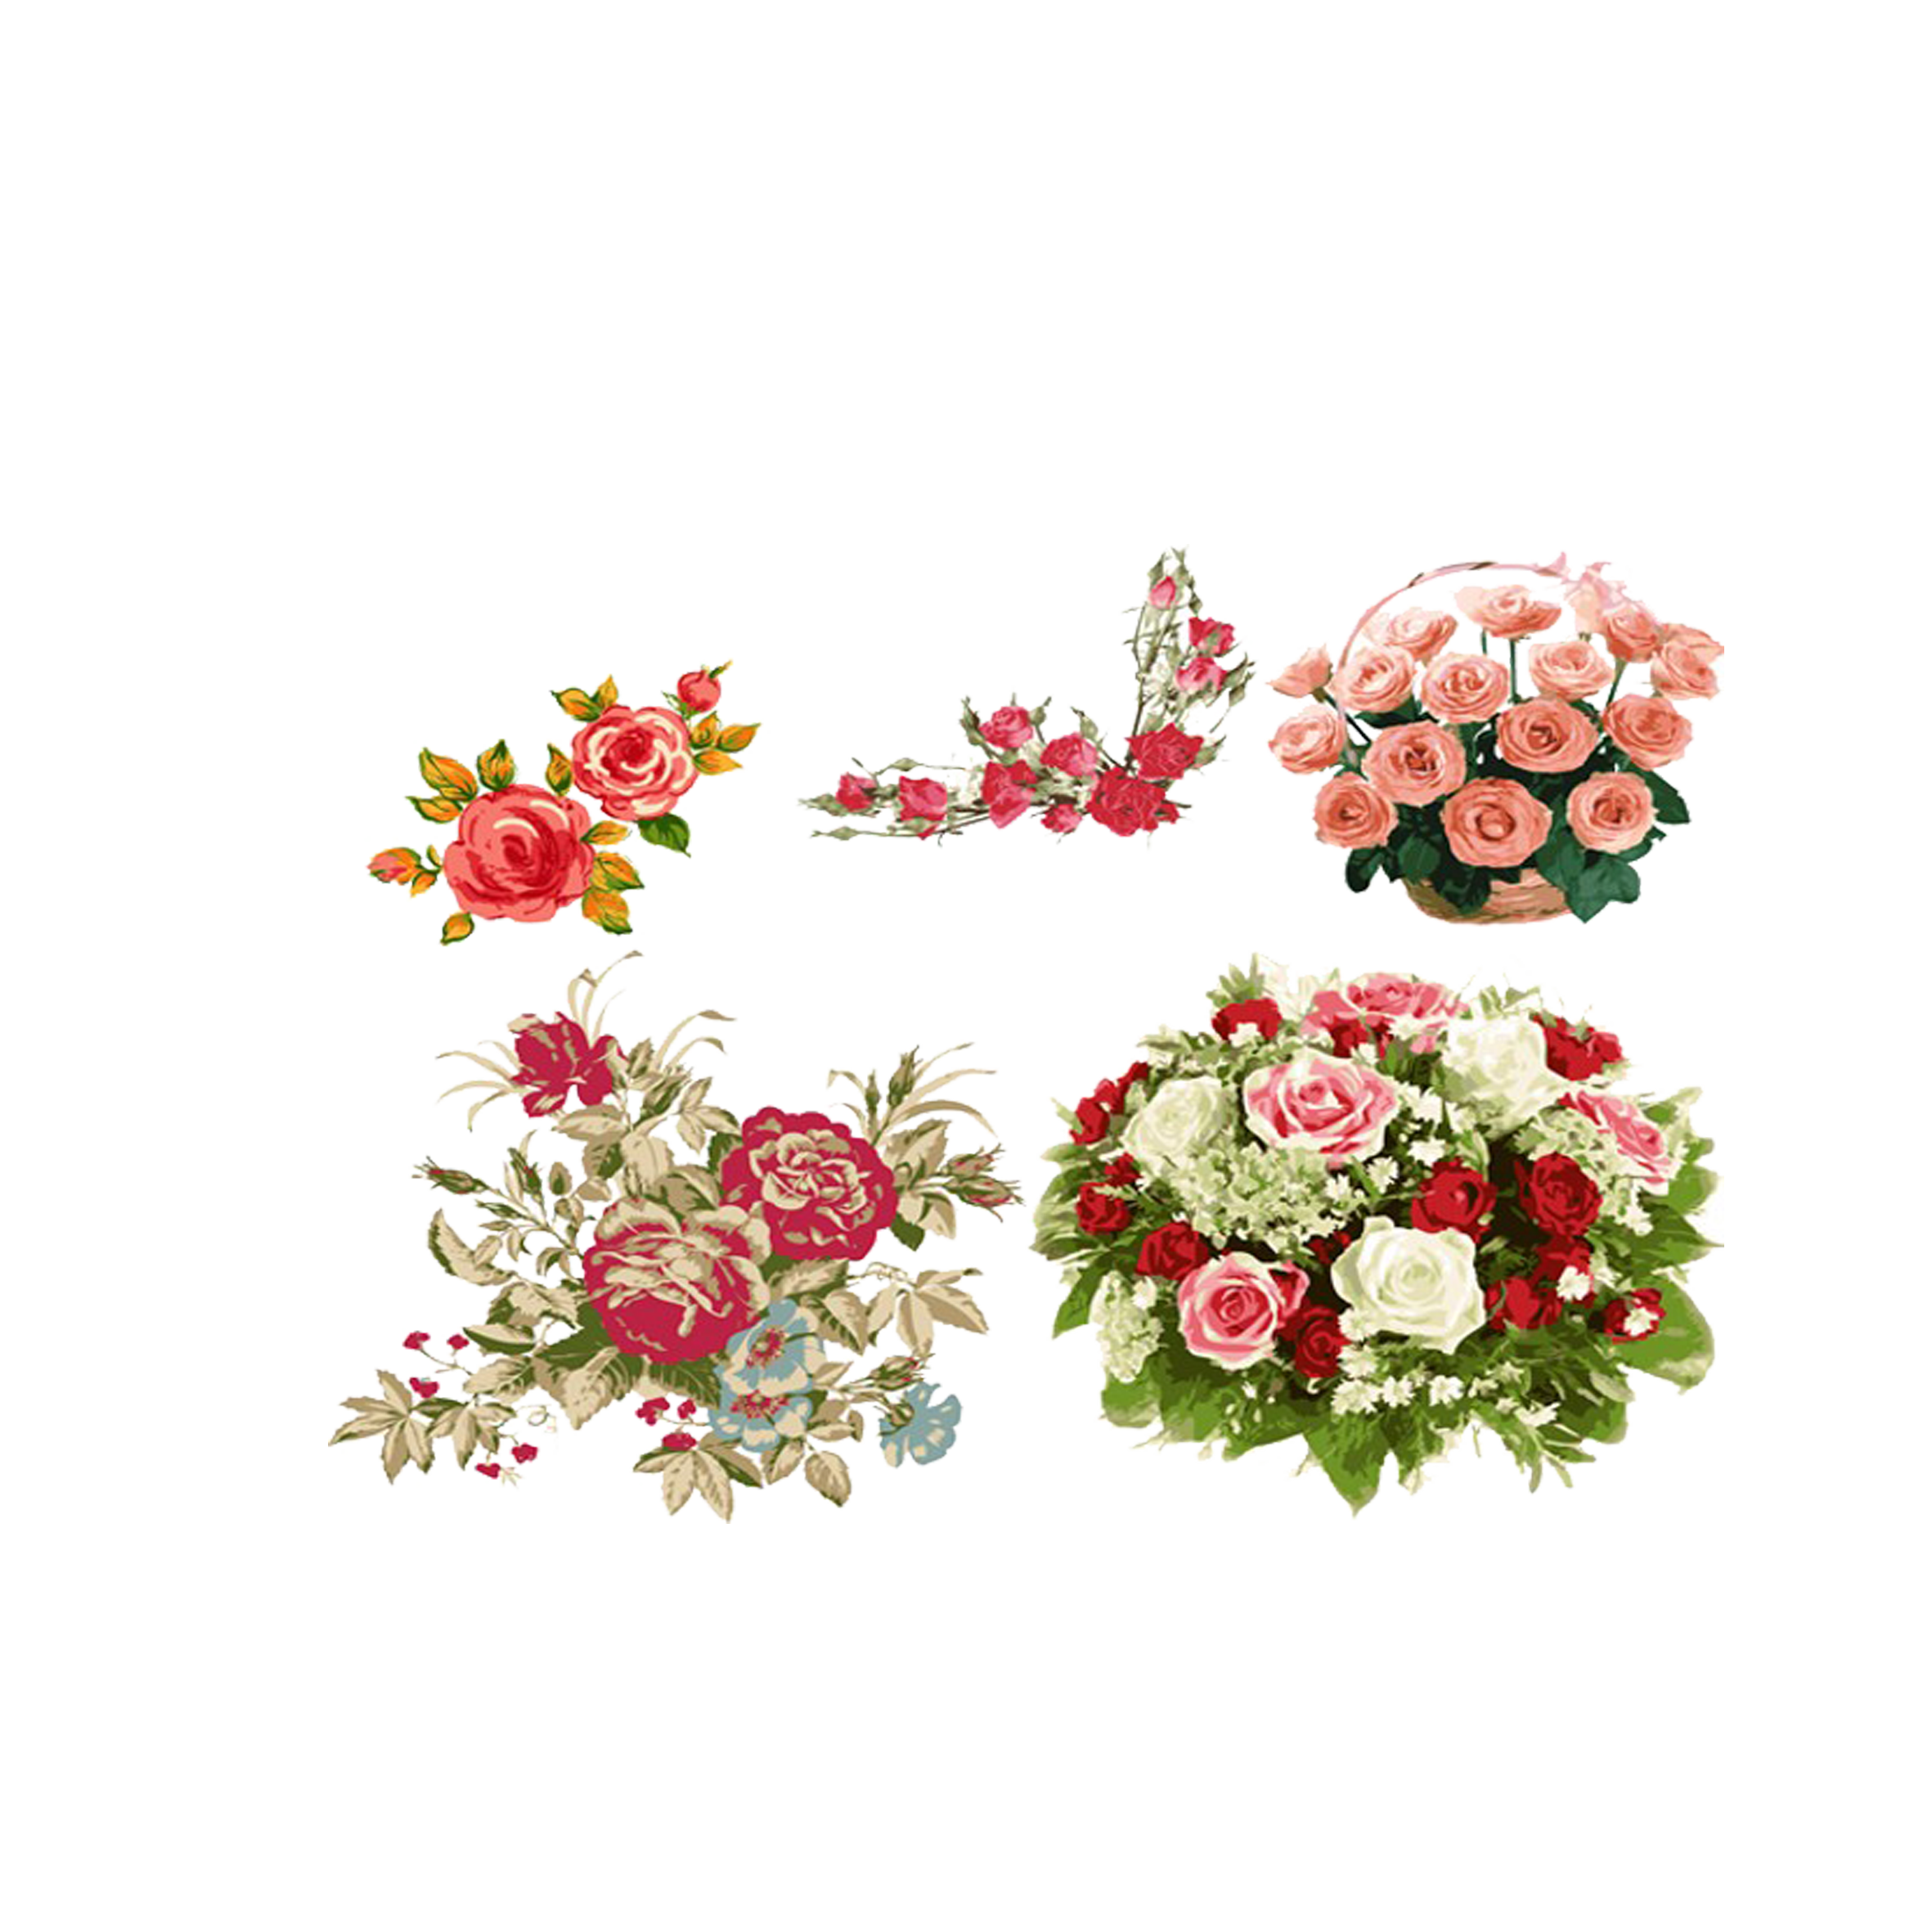 Flower bouquet drawing png. Beach rose painted delicate